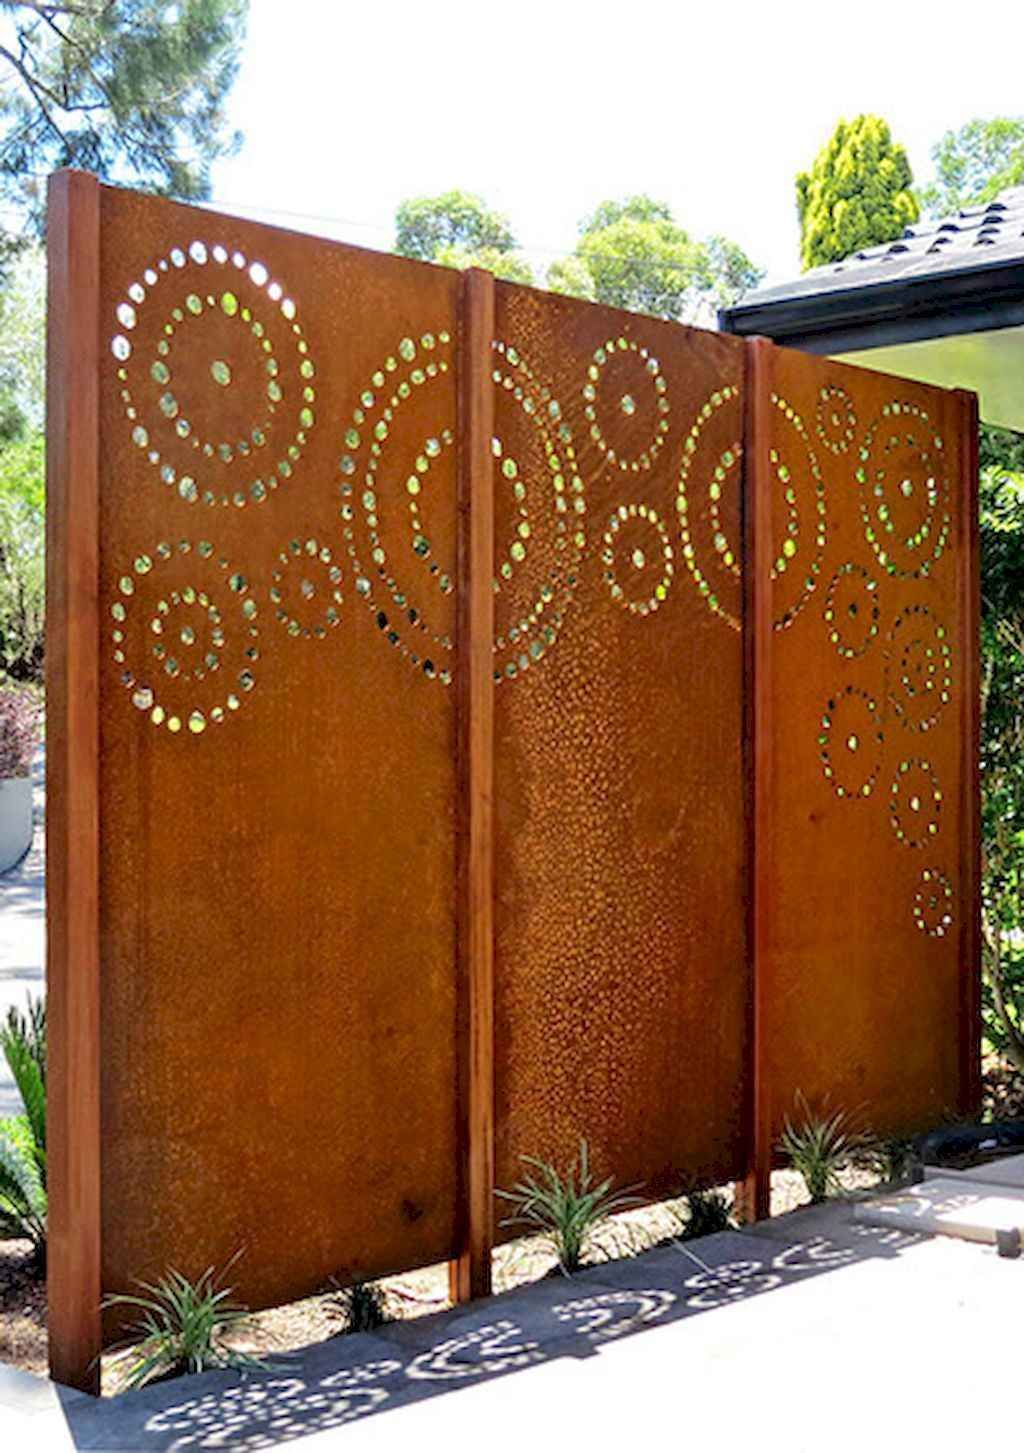 15 Simple and Cheap Backyard Privacy Fence Ideas   Privacy ...